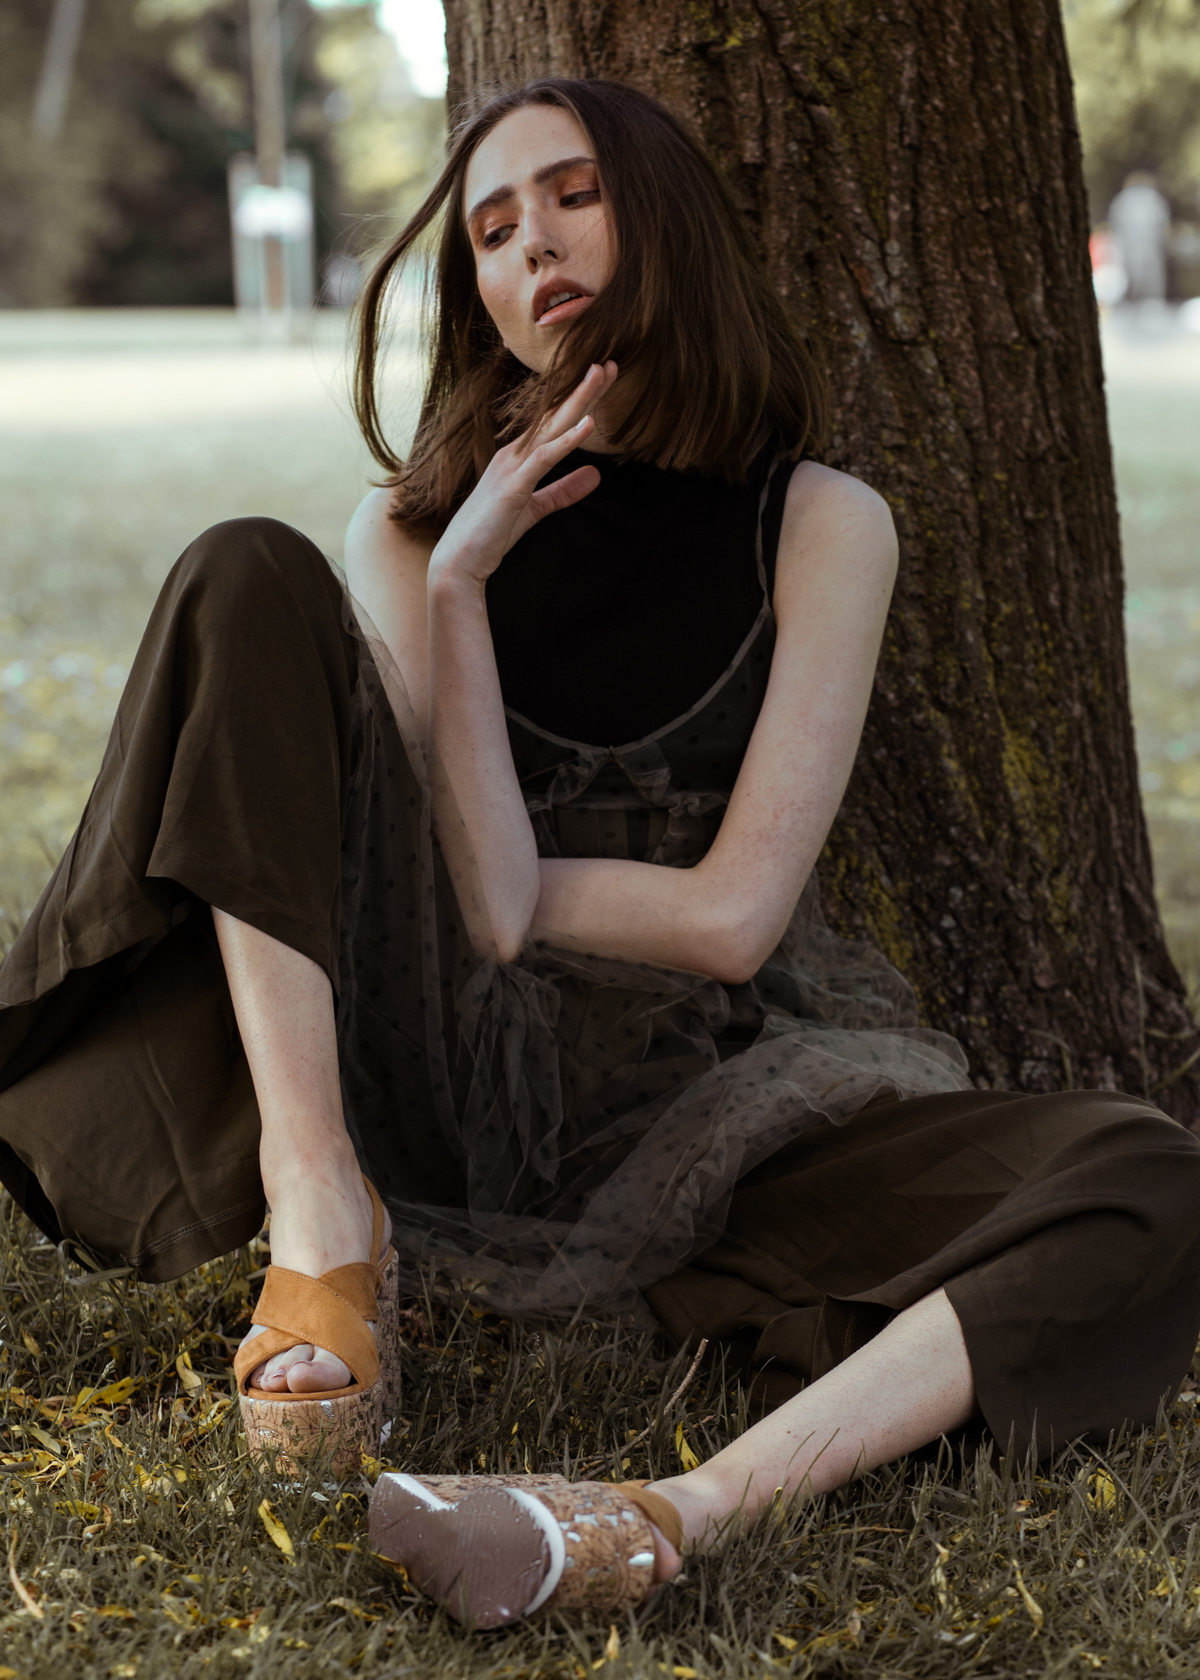 Kat_Terek_London_Bohemian_Editorial_Fashion_Photographer_Lindenstaub_Forest_Lucys_Magazine-5